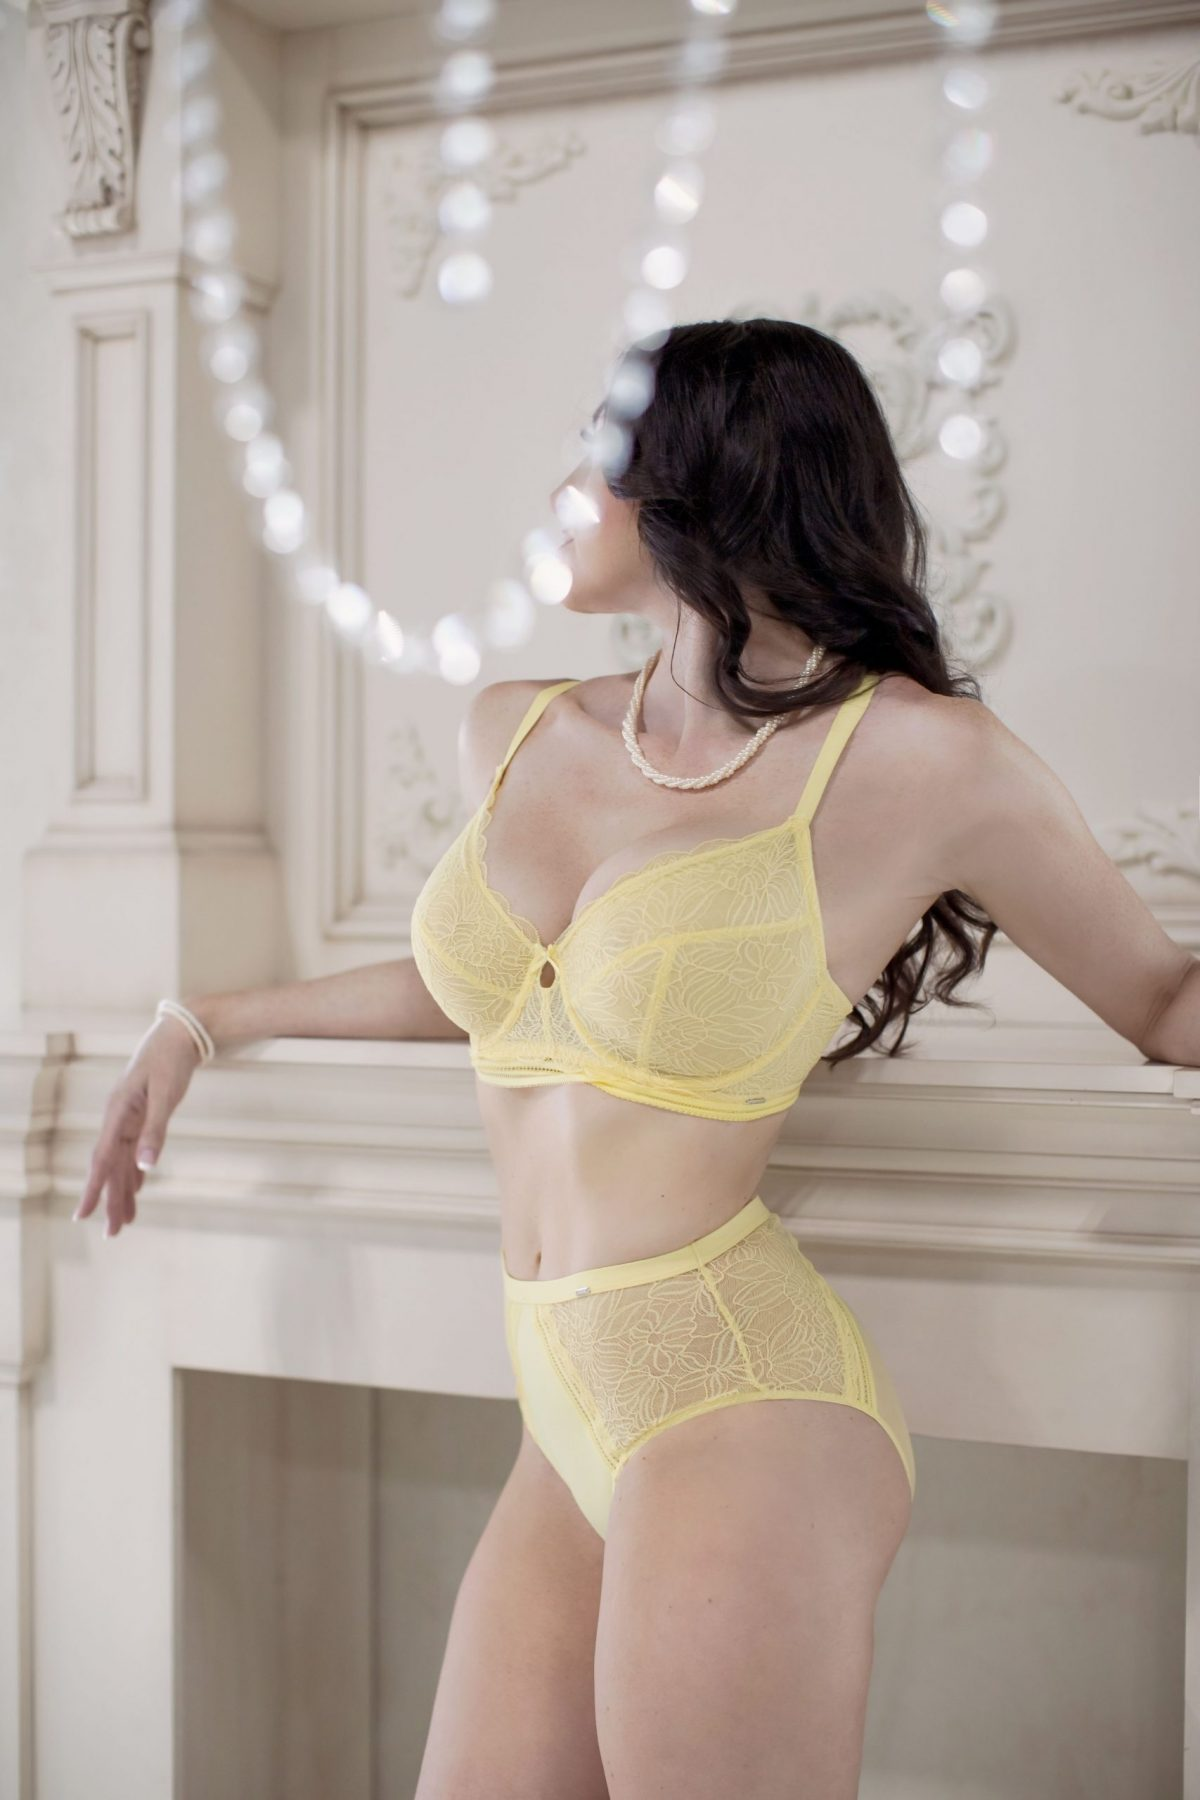 Toronto escorts companion upscale Rebecca Interests Duo Couple-friendly Disability-friendly Non-smoking Age Mature Figure Slender Curvy Tall Enhanced Raven-Haired Brunette European Tattoos Large Arrival New Photos New